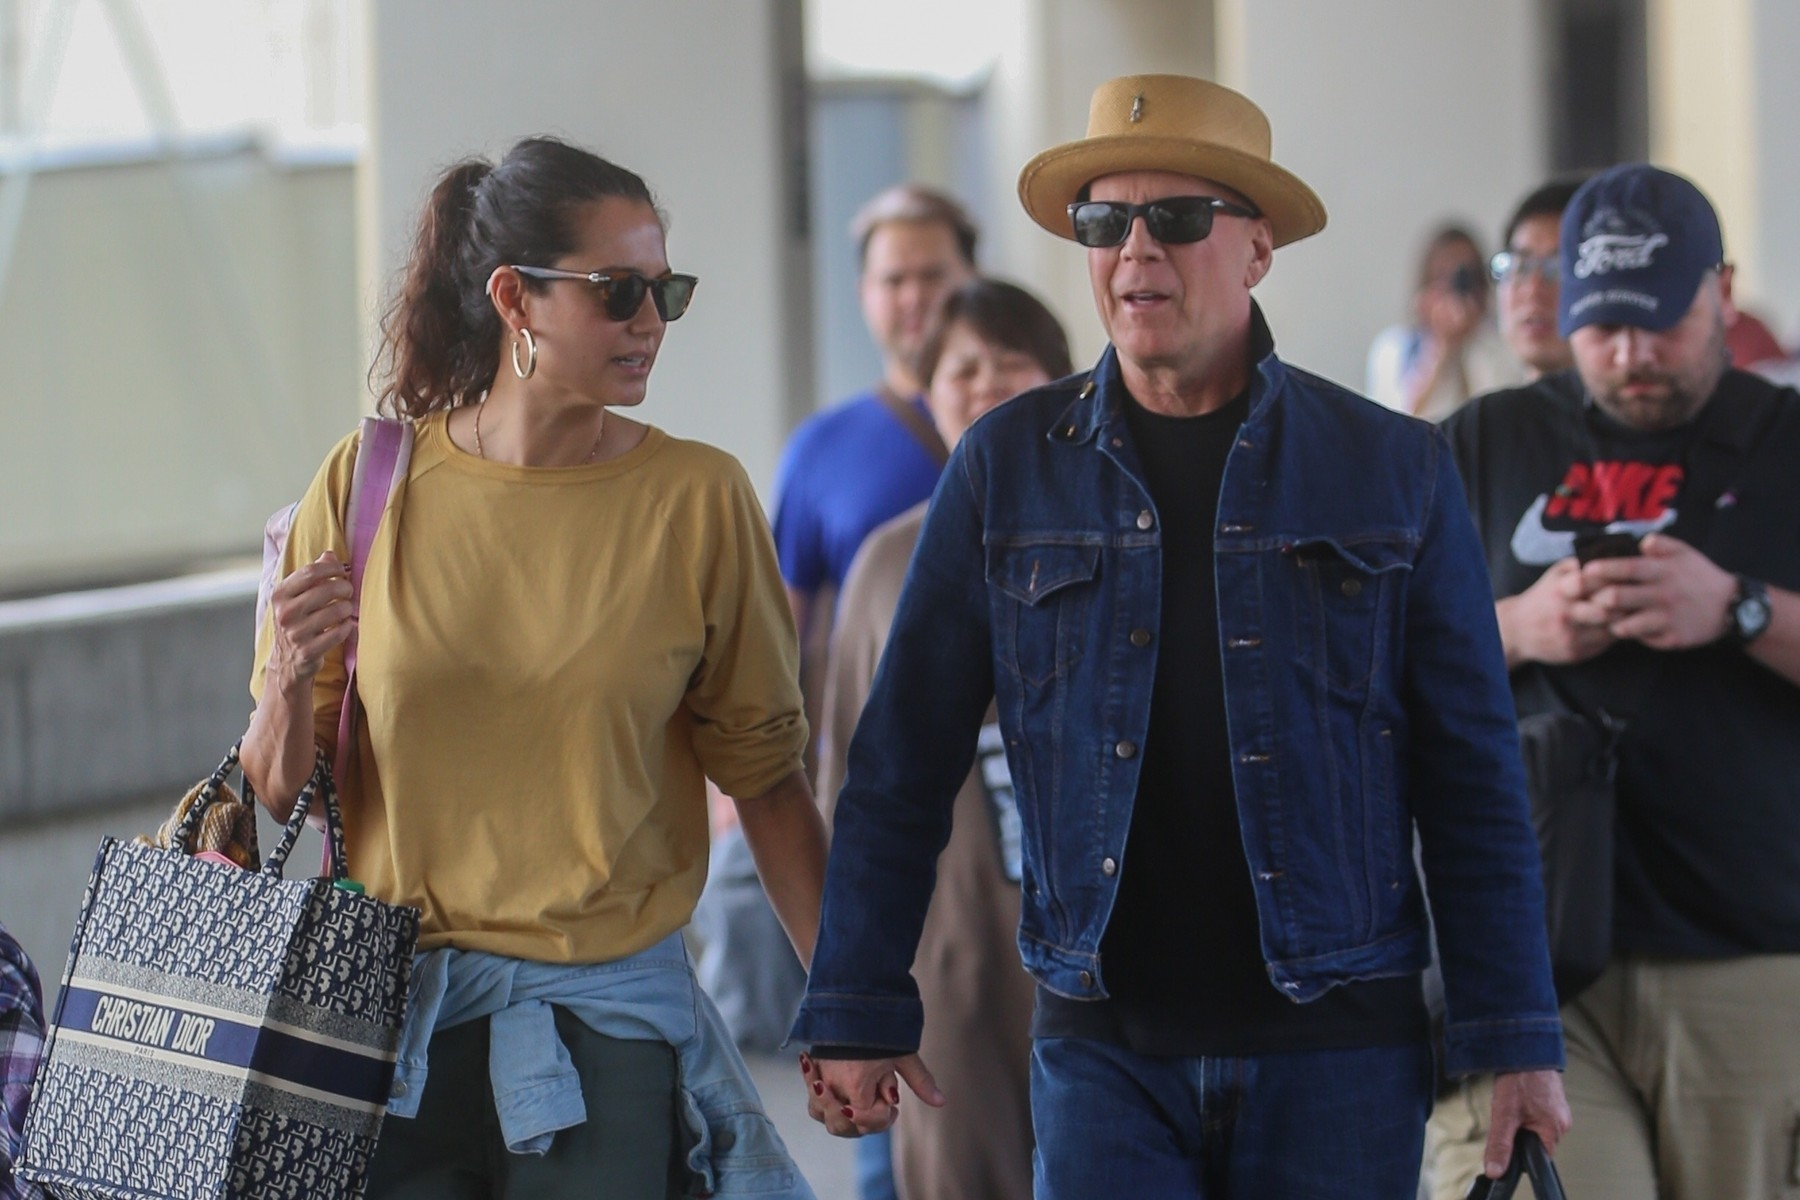 Honolulu, HI  - *EXCLUSIVE*  - Bruce Willis spotted in Hawaii airport in double denim! Bruce was seen committing the fashion faux pas while traveling with three of his daughters and spouse Emma Heming Willis. Bruce was in the islands ringing in the new year.  BACKGRID USA 4 JANUARY 2020, Image: 490991948, License: Rights-managed, Restrictions: , Model Release: no, Credit line: Flightrisk / BACKGRID / Backgrid USA / Profimedia